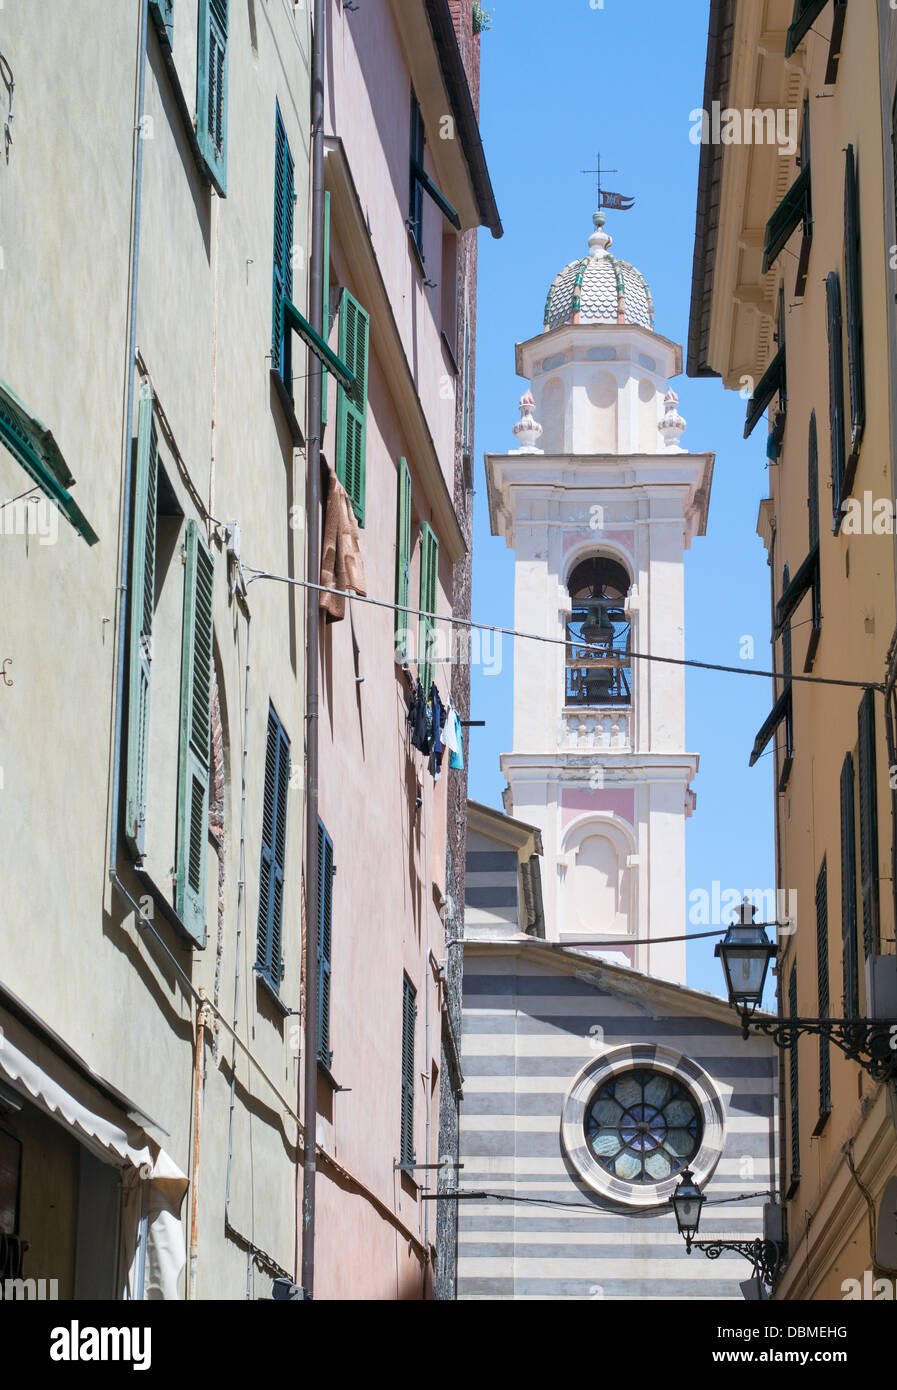 Bell tower of St Maria church seen along a narrow street within the historic northern Italian town of Albenga. - Stock Image